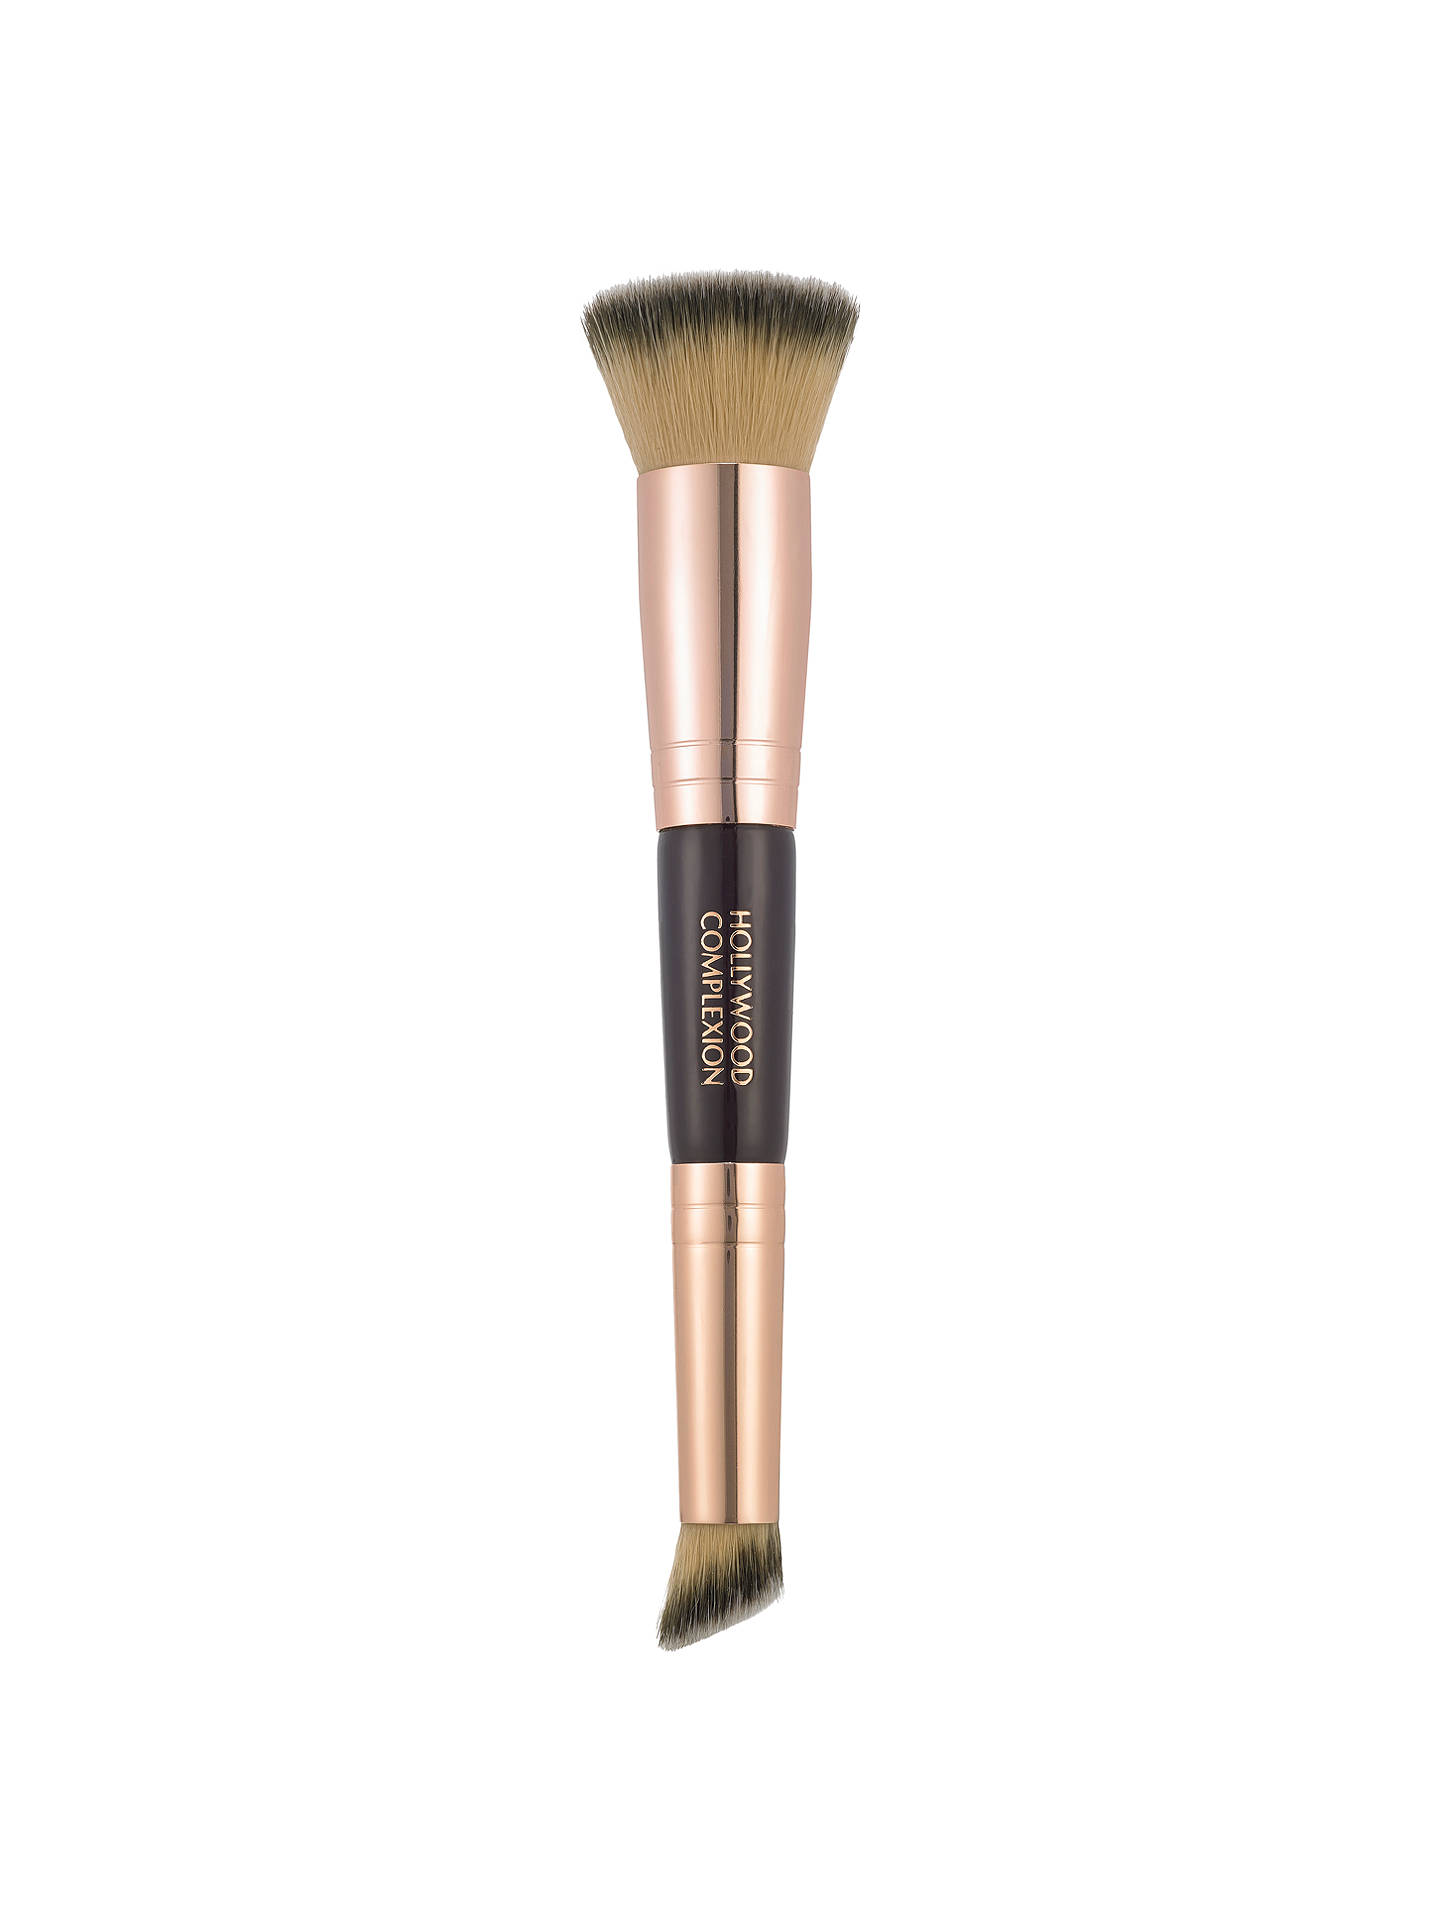 BuyCharlotte Tilbury Hollywood Complexion Brush Online at johnlewis.com